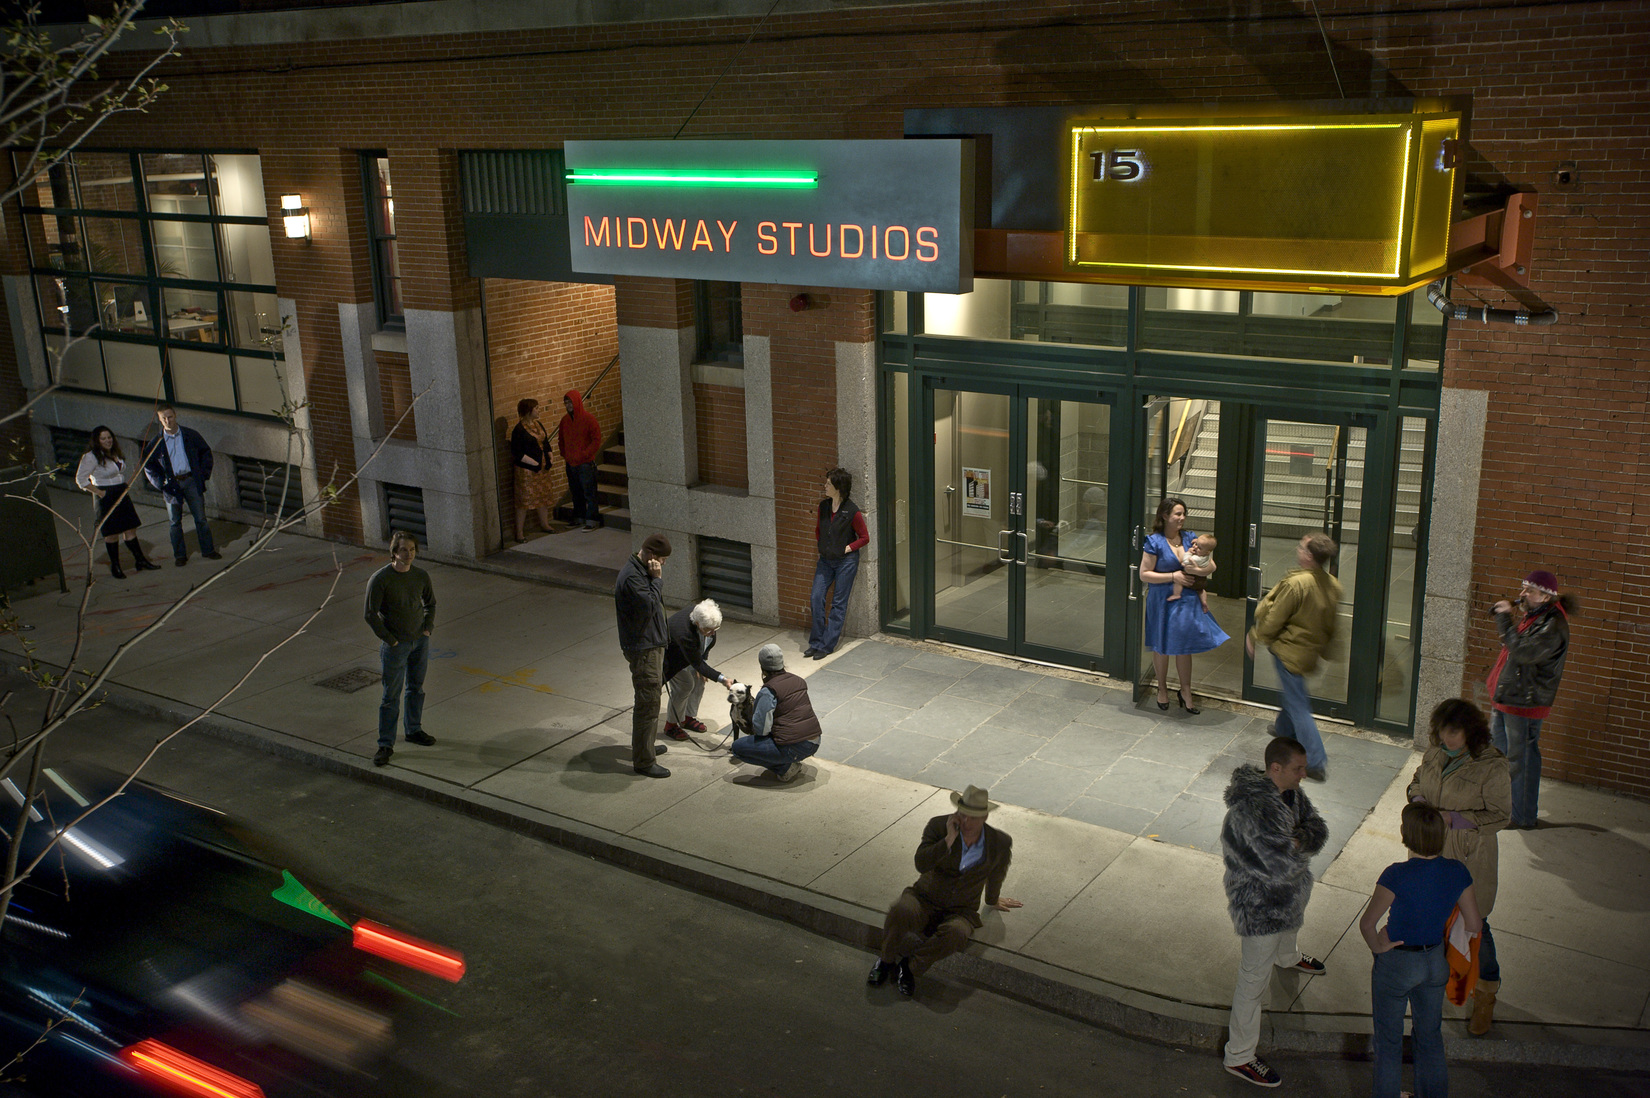 Midway Studios Front entry